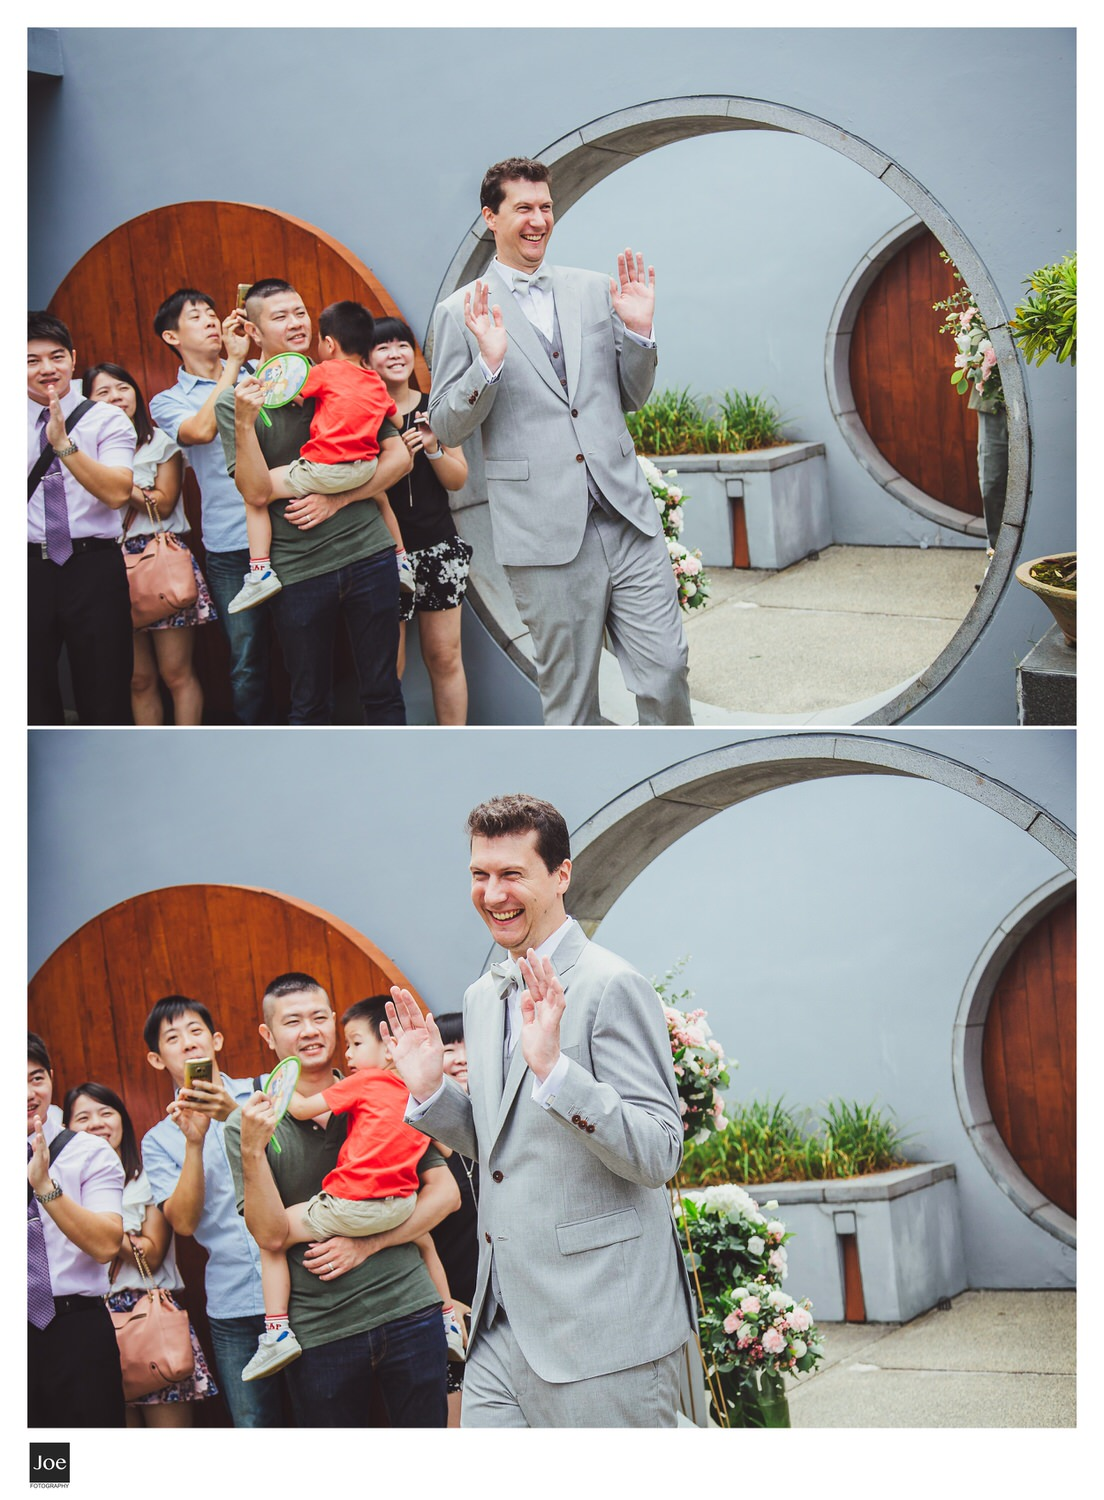 joe-fotography-the-lalu-sun-moon-lake-wedding-kay-geoffrey-121.jpg